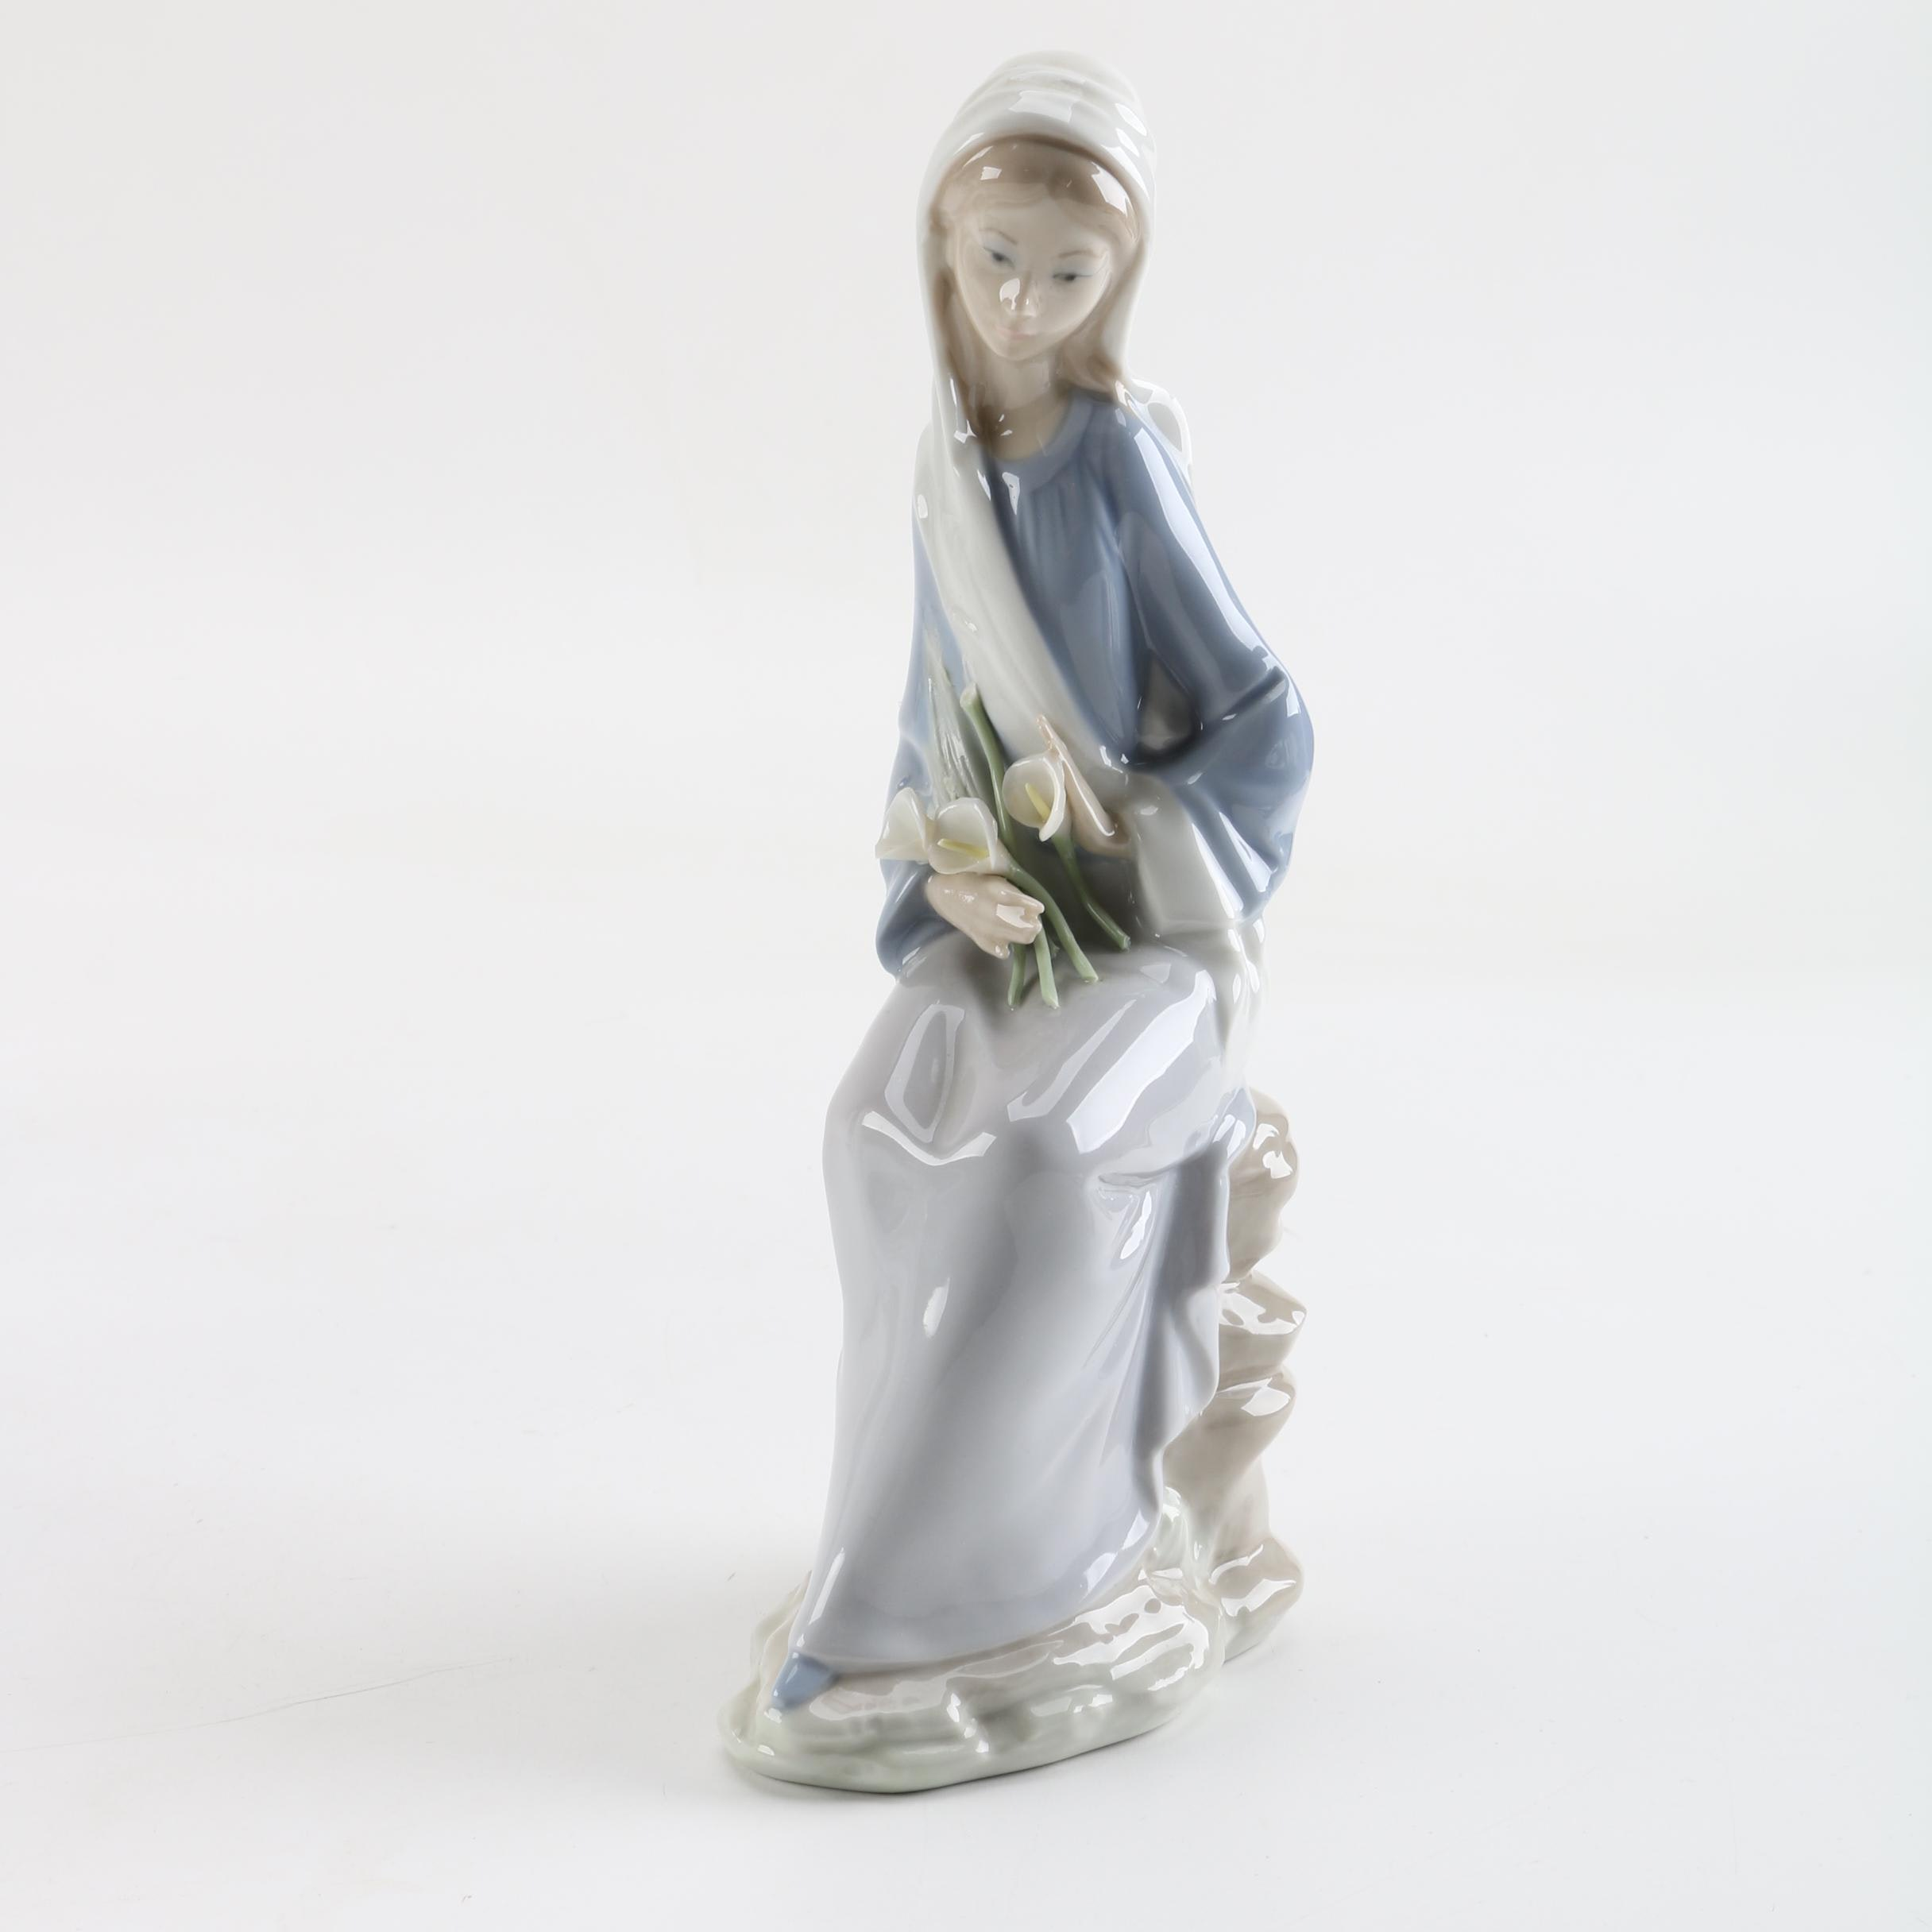 Lladro Sitting Girl with Calla Lilies Porcelain Figurine